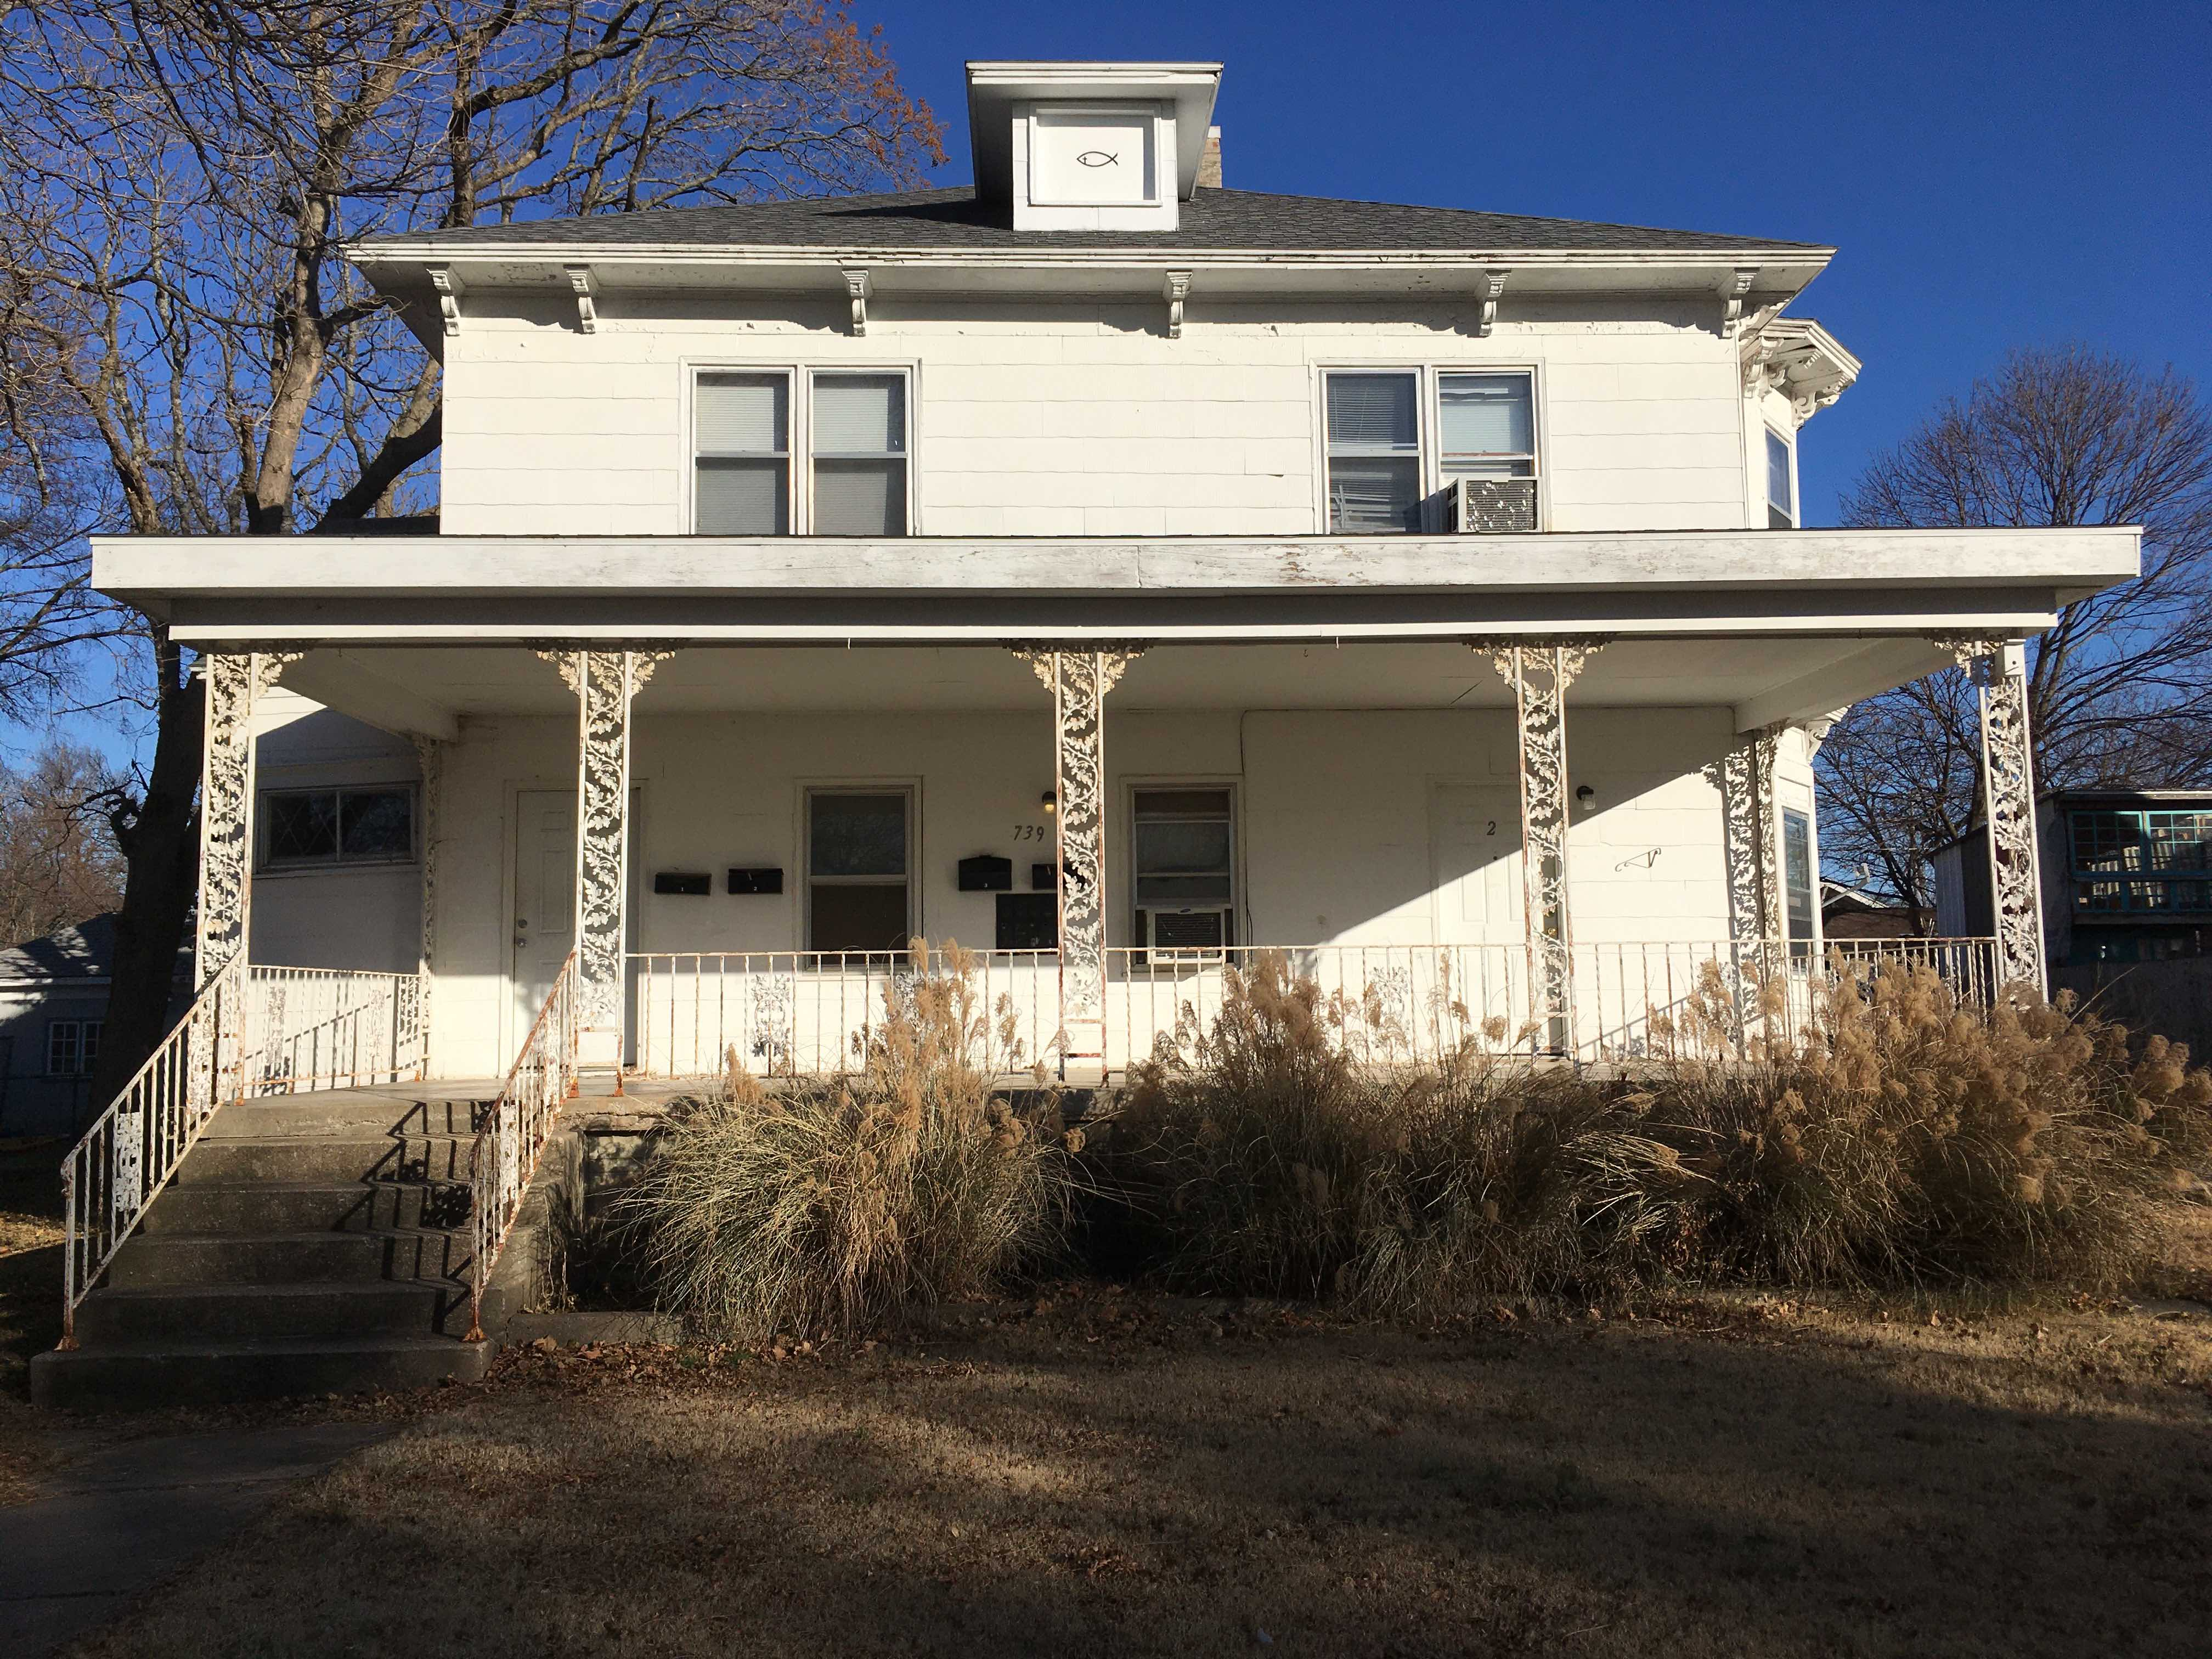 739 S. Crawford, Fort Scott, Bourbon County, Kansas, United States 66701, 2 Bedrooms Bedrooms, ,1 BathroomBathrooms,Apartment,For Rent,S. Crawford,2,1024